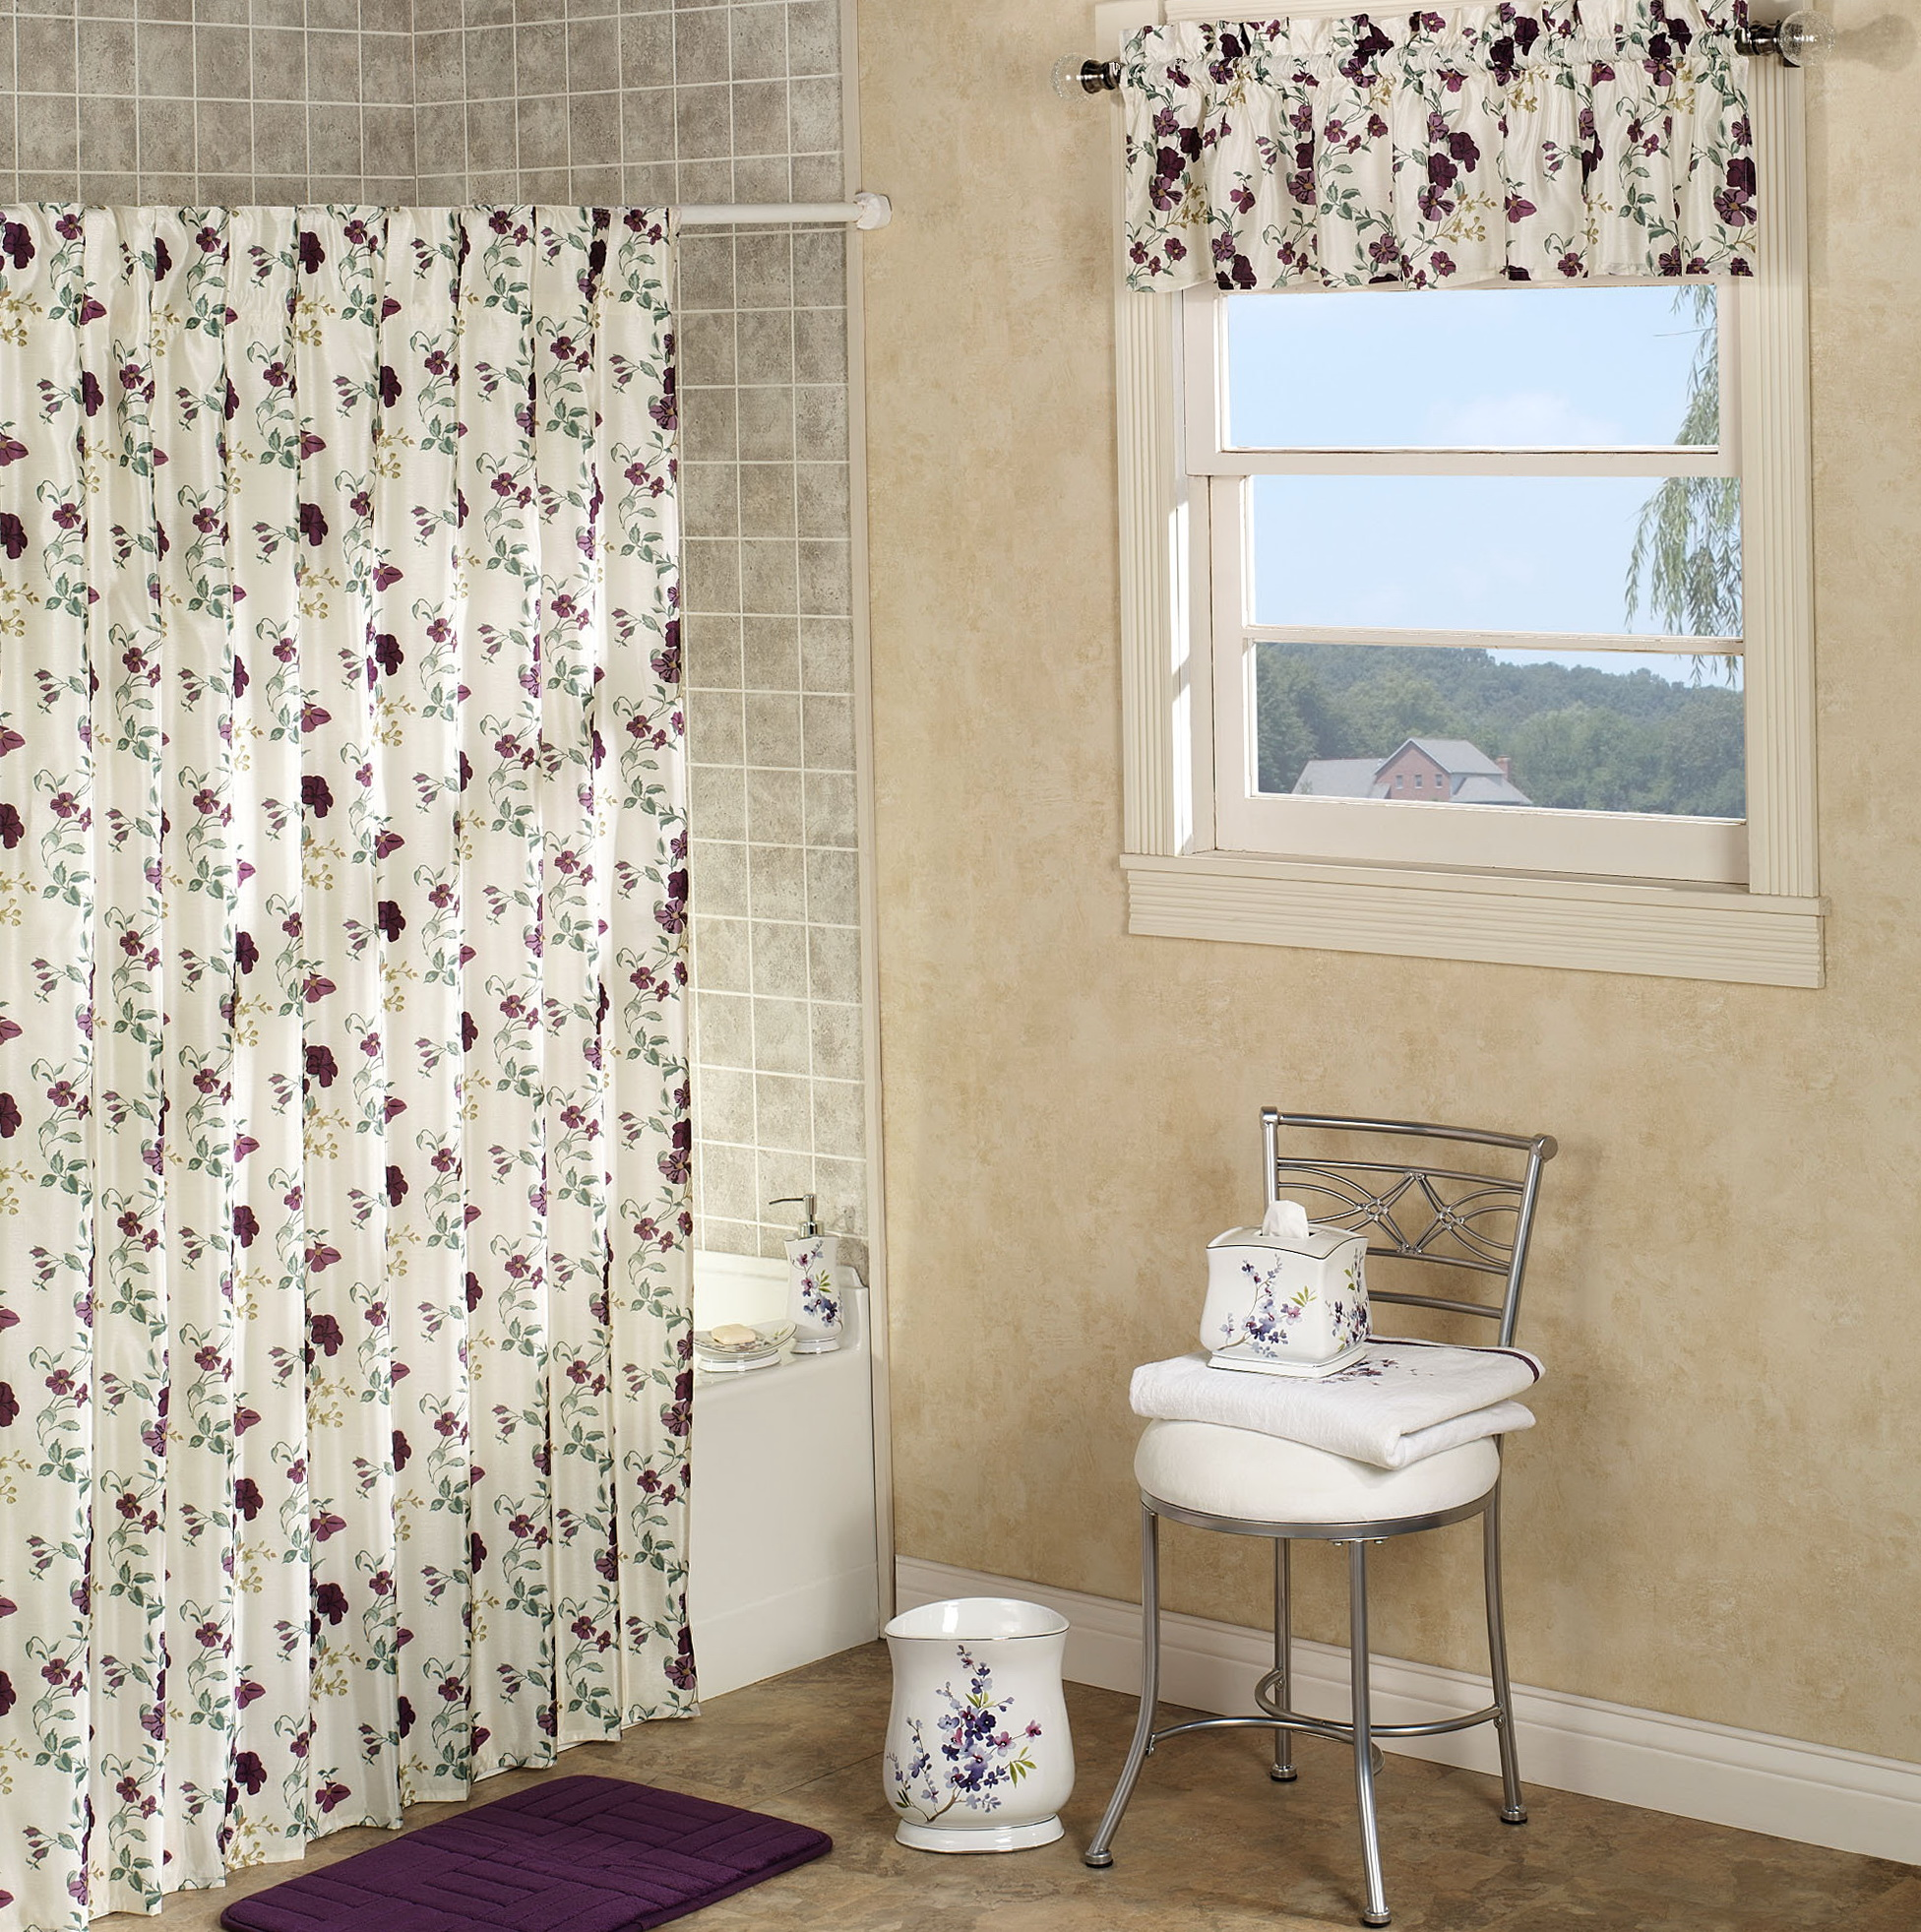 Polyester Shower Curtain Need Liner Home Design Ideas